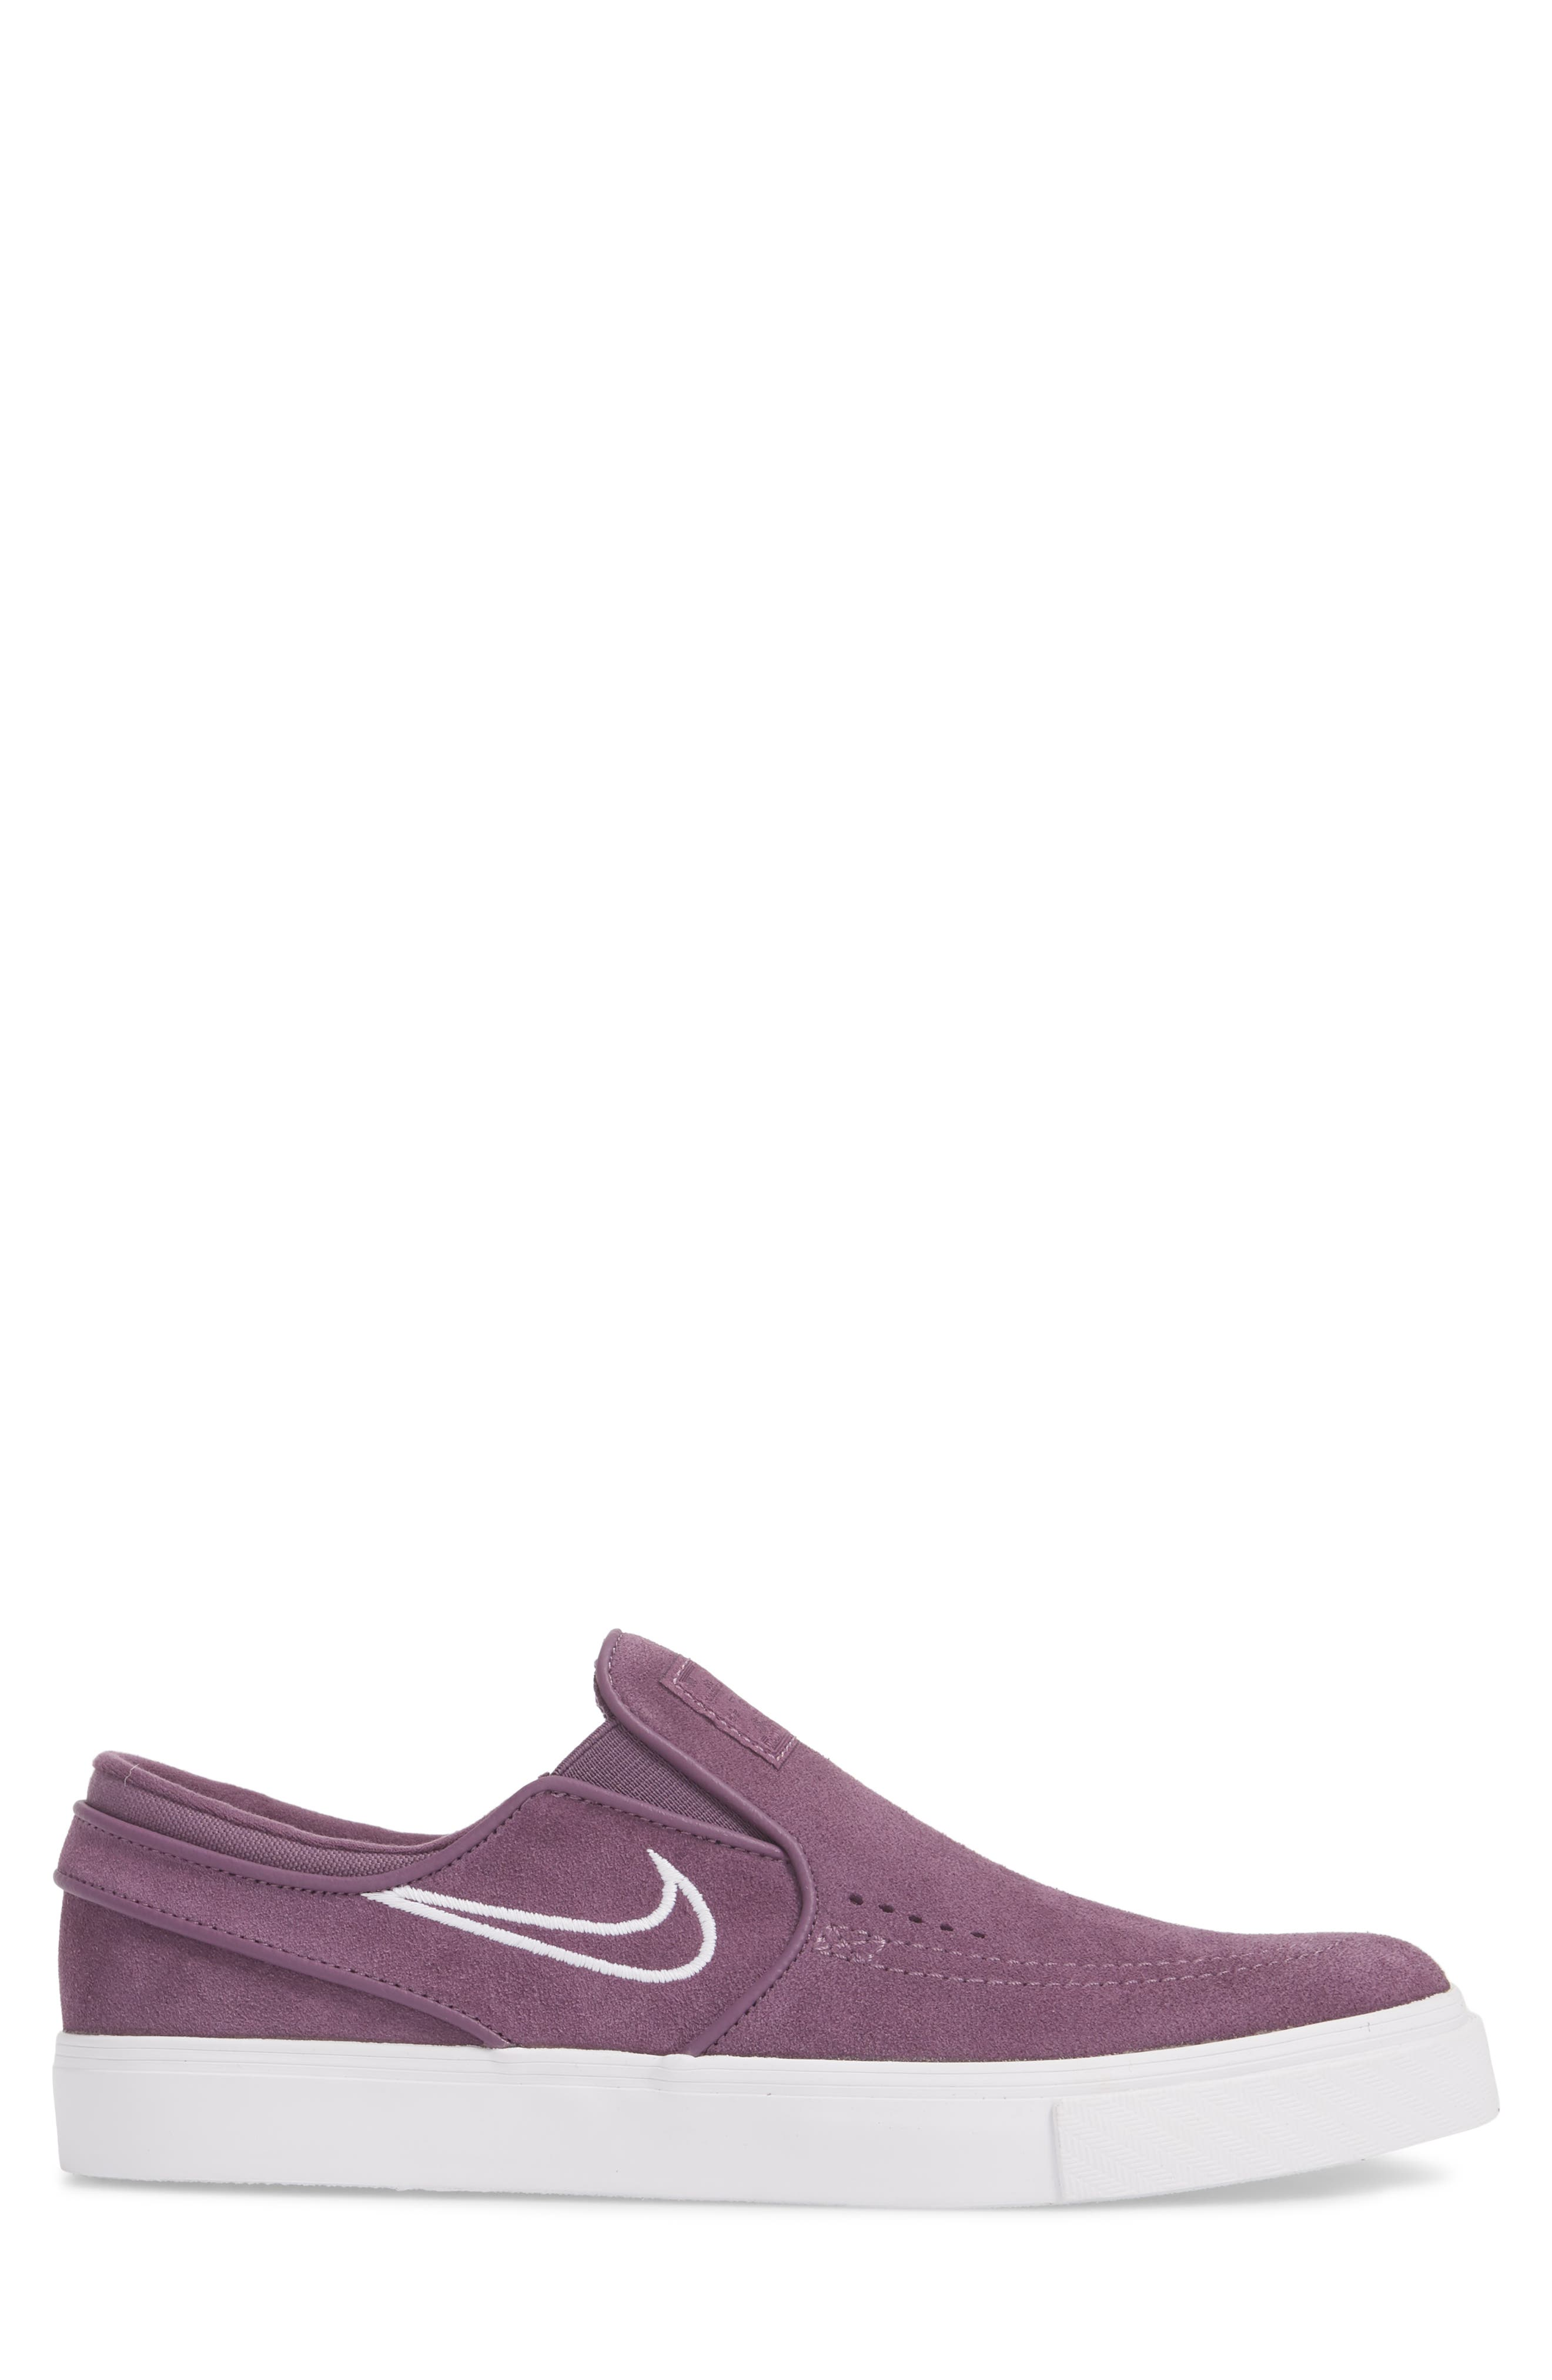 Zoom Stefan Janoski Slip-On,                             Alternate thumbnail 3, color,                             Pro Purple/ White/ Grey